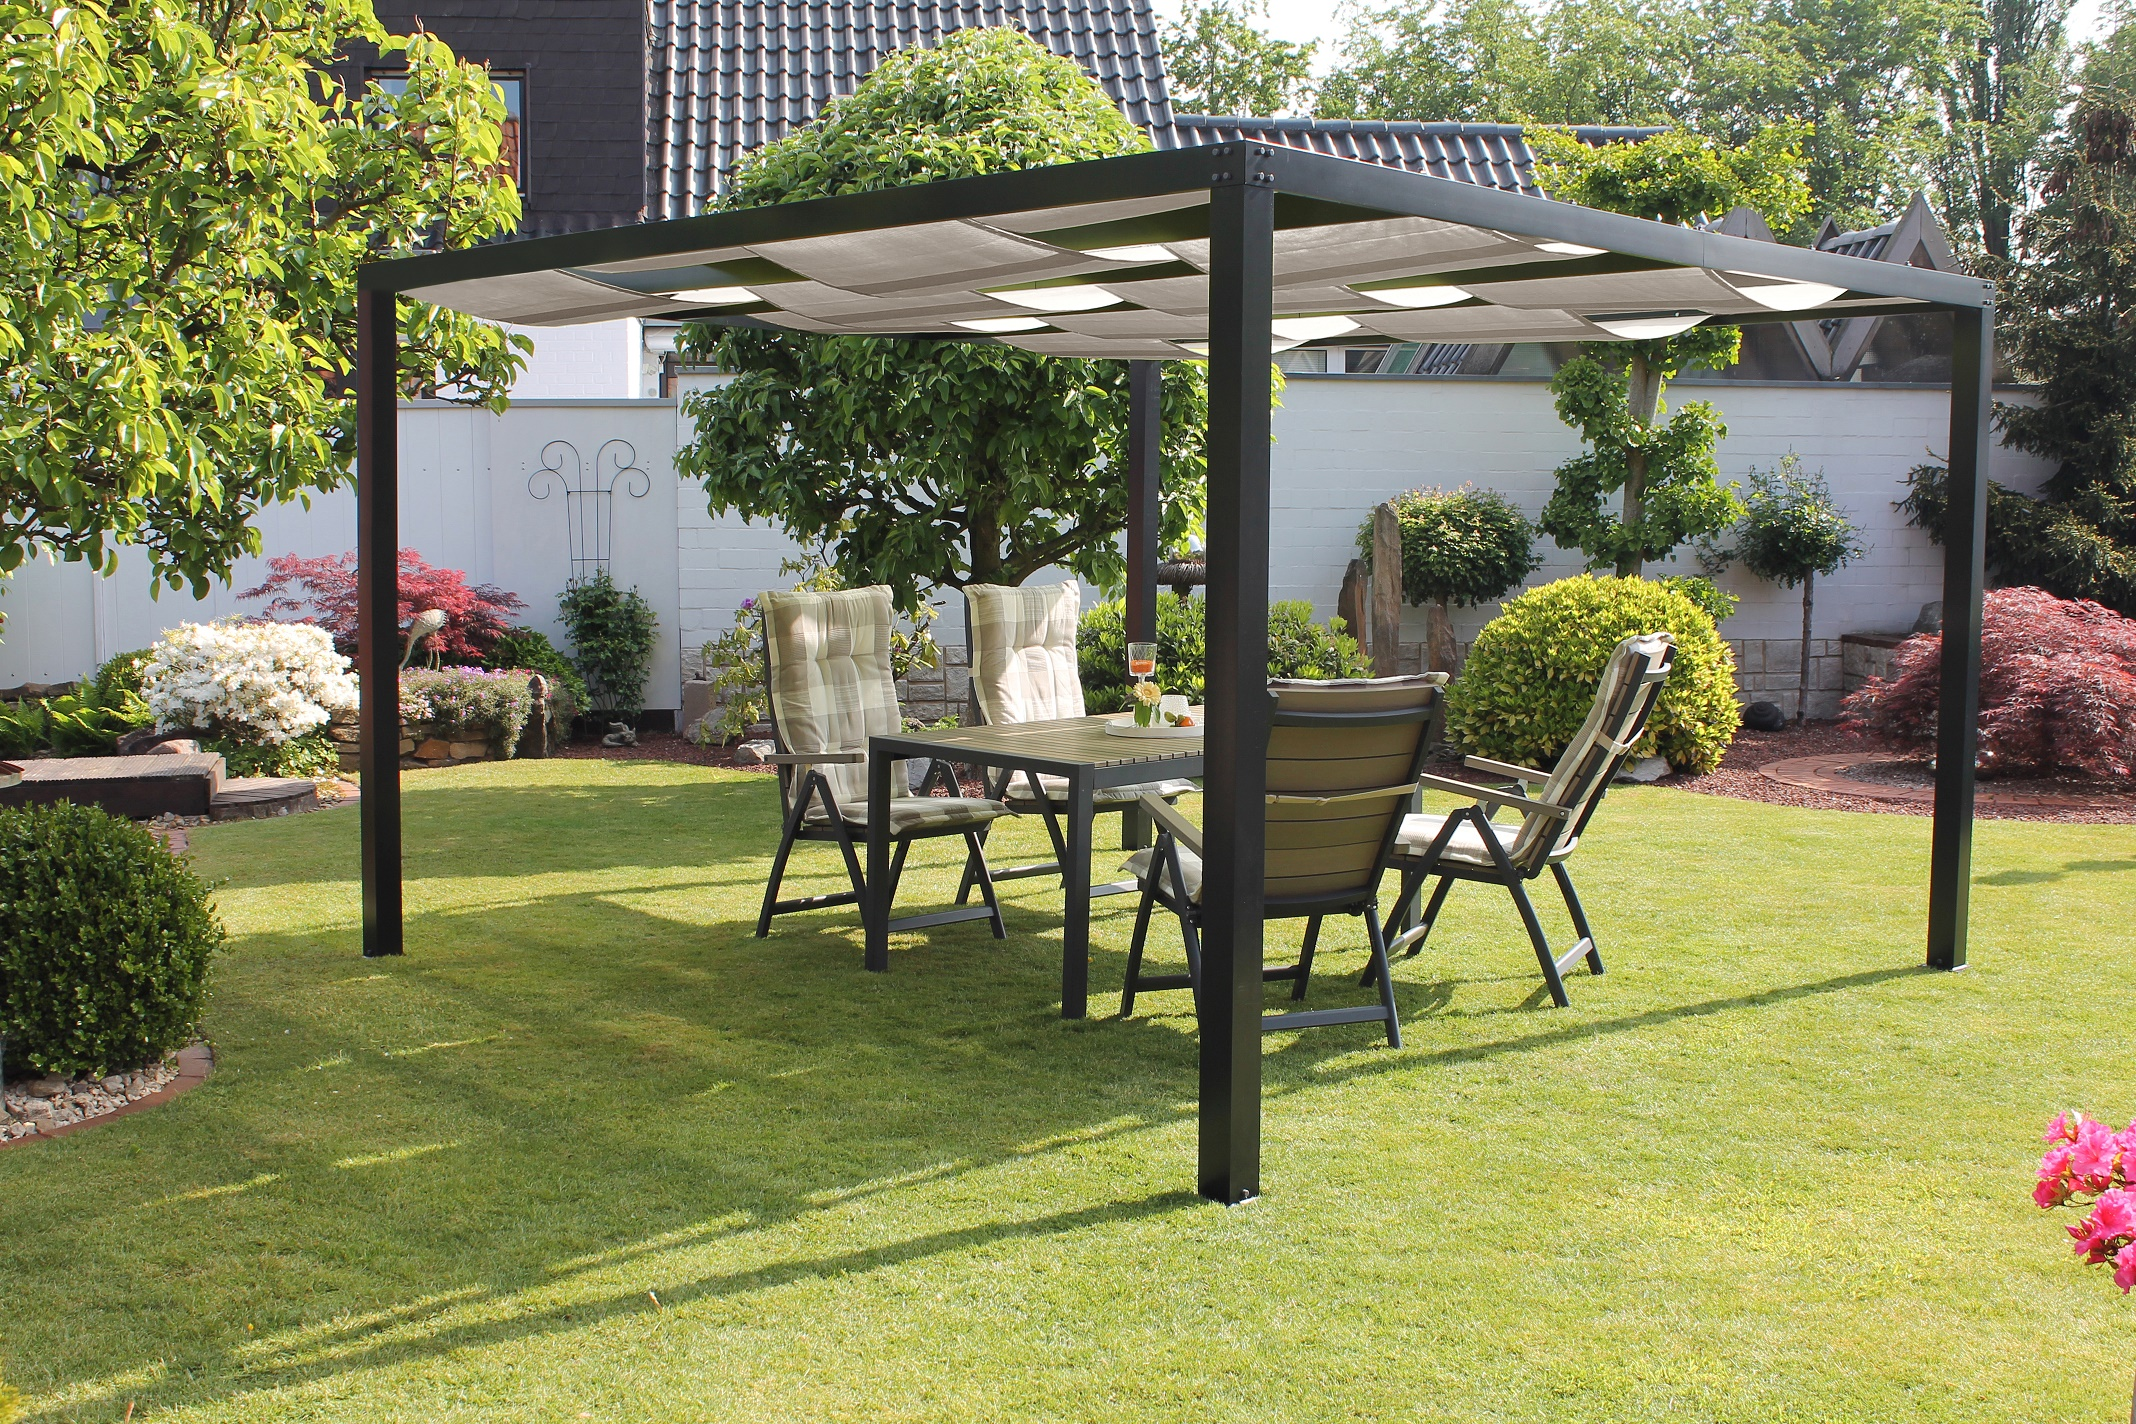 leco alu pergola loft 360x360cm terrasse berdachung pavillon sonnenschutz garten m bel. Black Bedroom Furniture Sets. Home Design Ideas